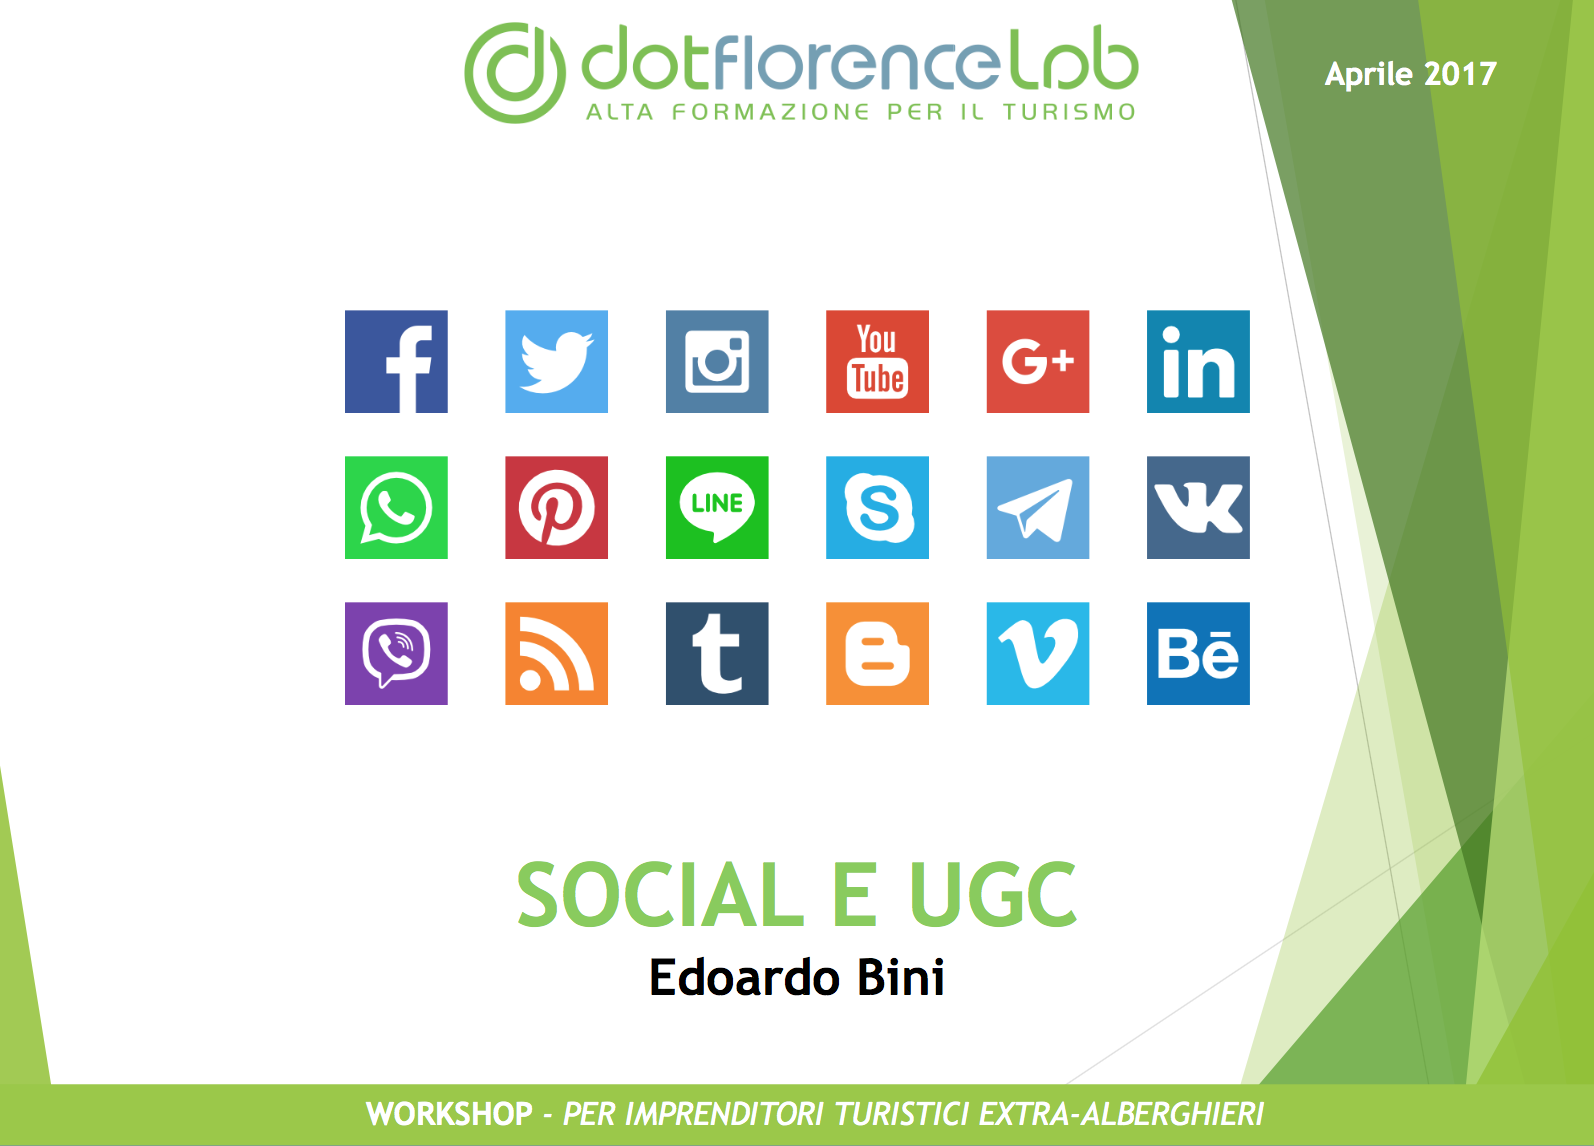 Dotflorence Lab 27 Settembre 2017 - Social Media Strategies